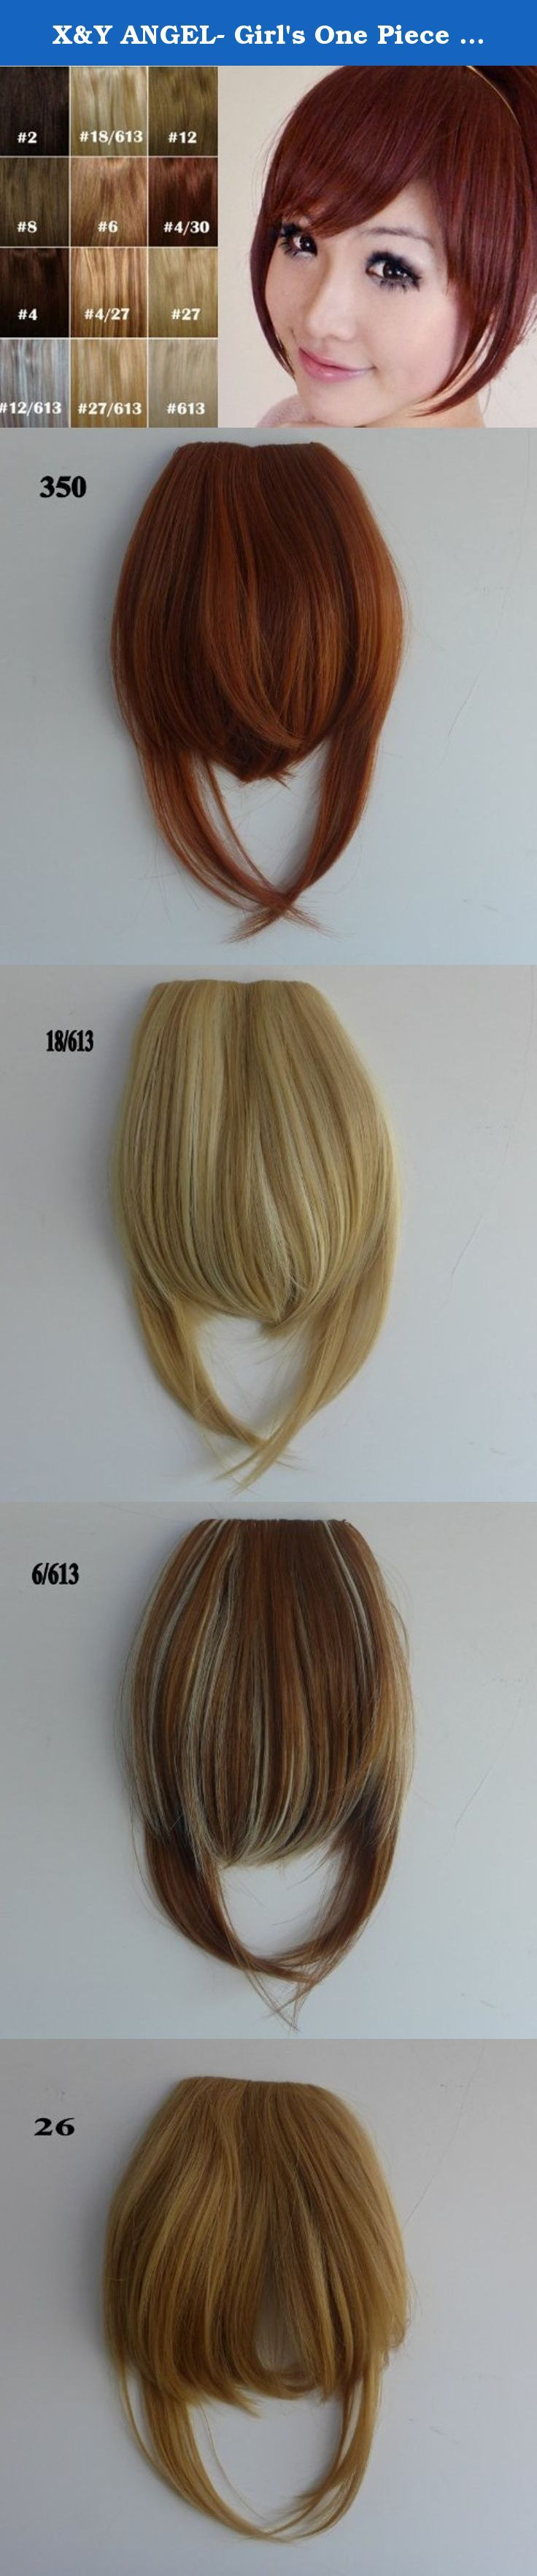 X&Y ANGEL- Girl's One Piece Hair Extensions Fashion Front Fringe Bangs/fringes Clip In On (#4/6 (dark brown)). Feature: . It should be fit on most people. The item is Easy to wash and wear ,care just using a little mild shampoo in cold water.